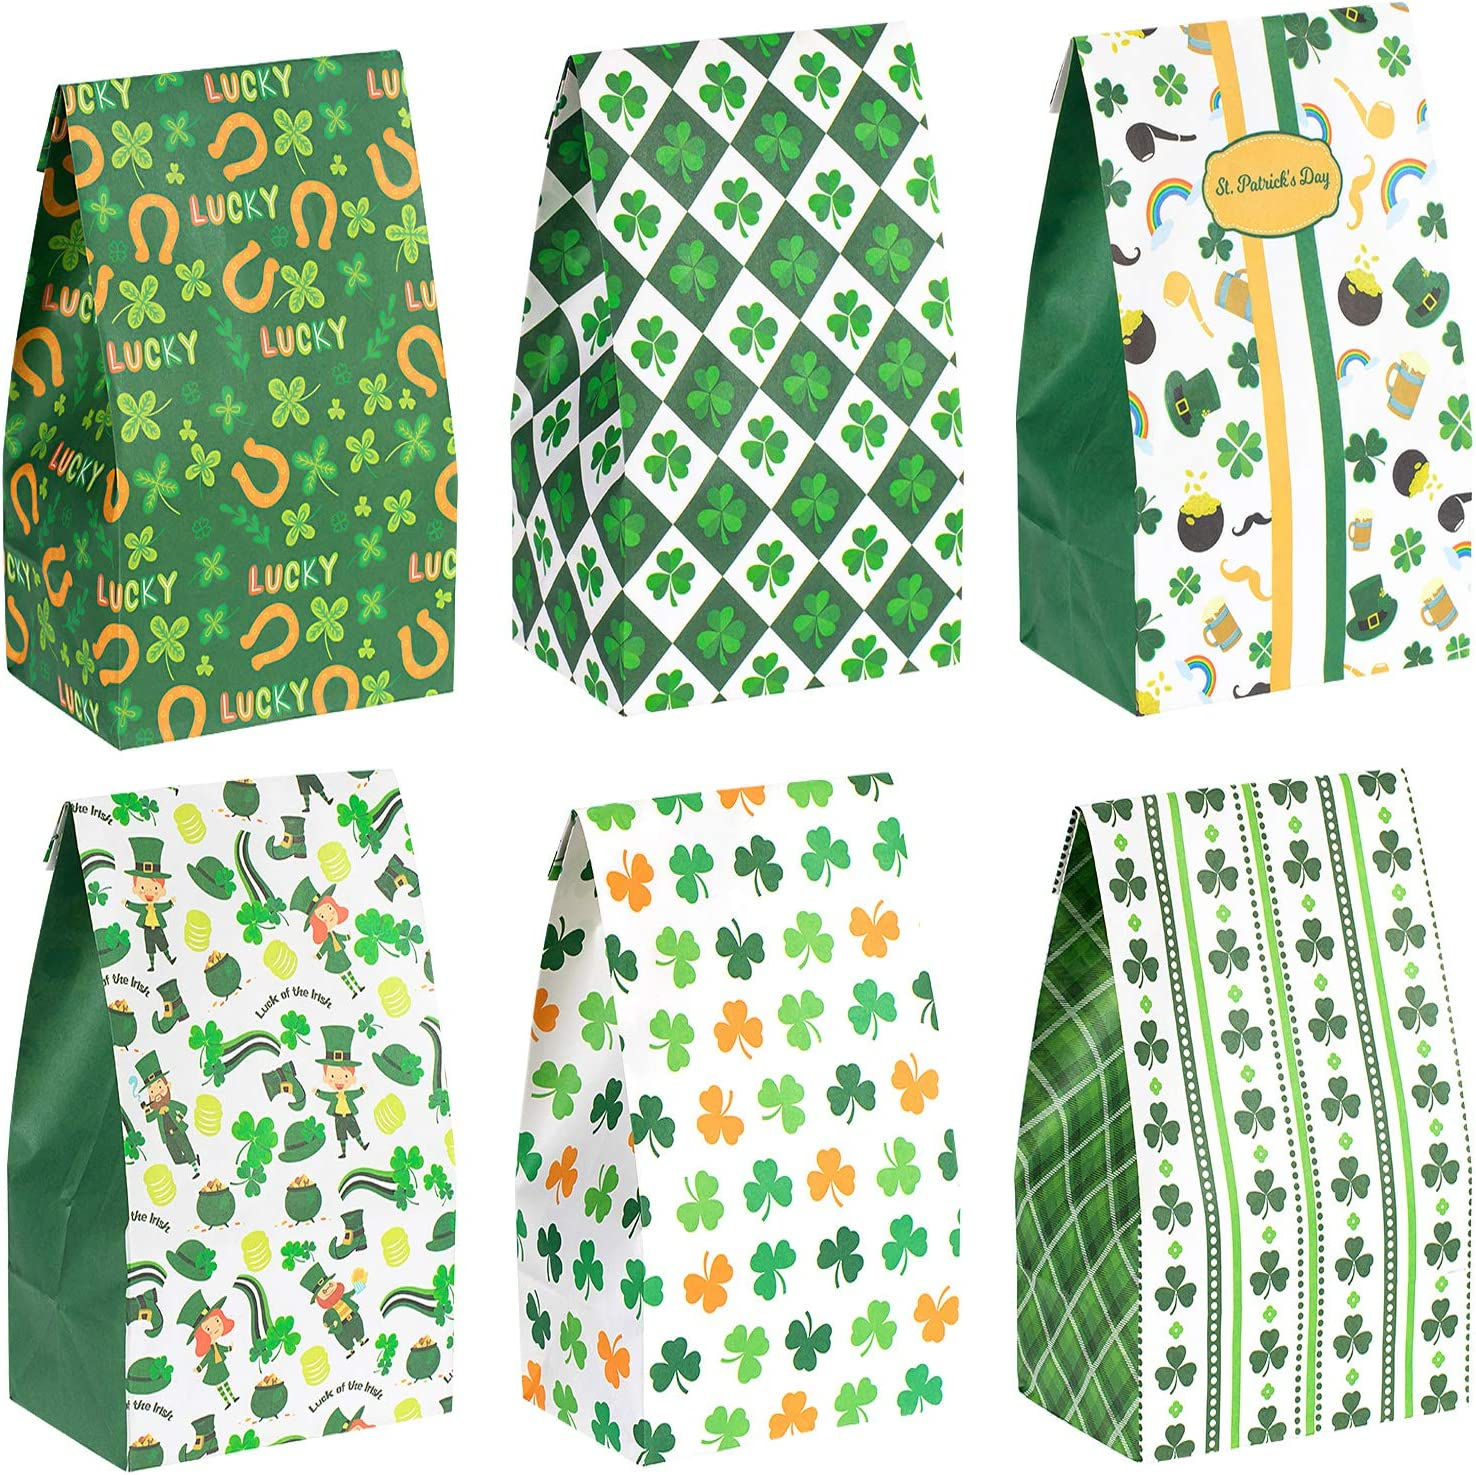 St 12 pack Patricks Day Party Supplies Cellophane Shamrock Bags